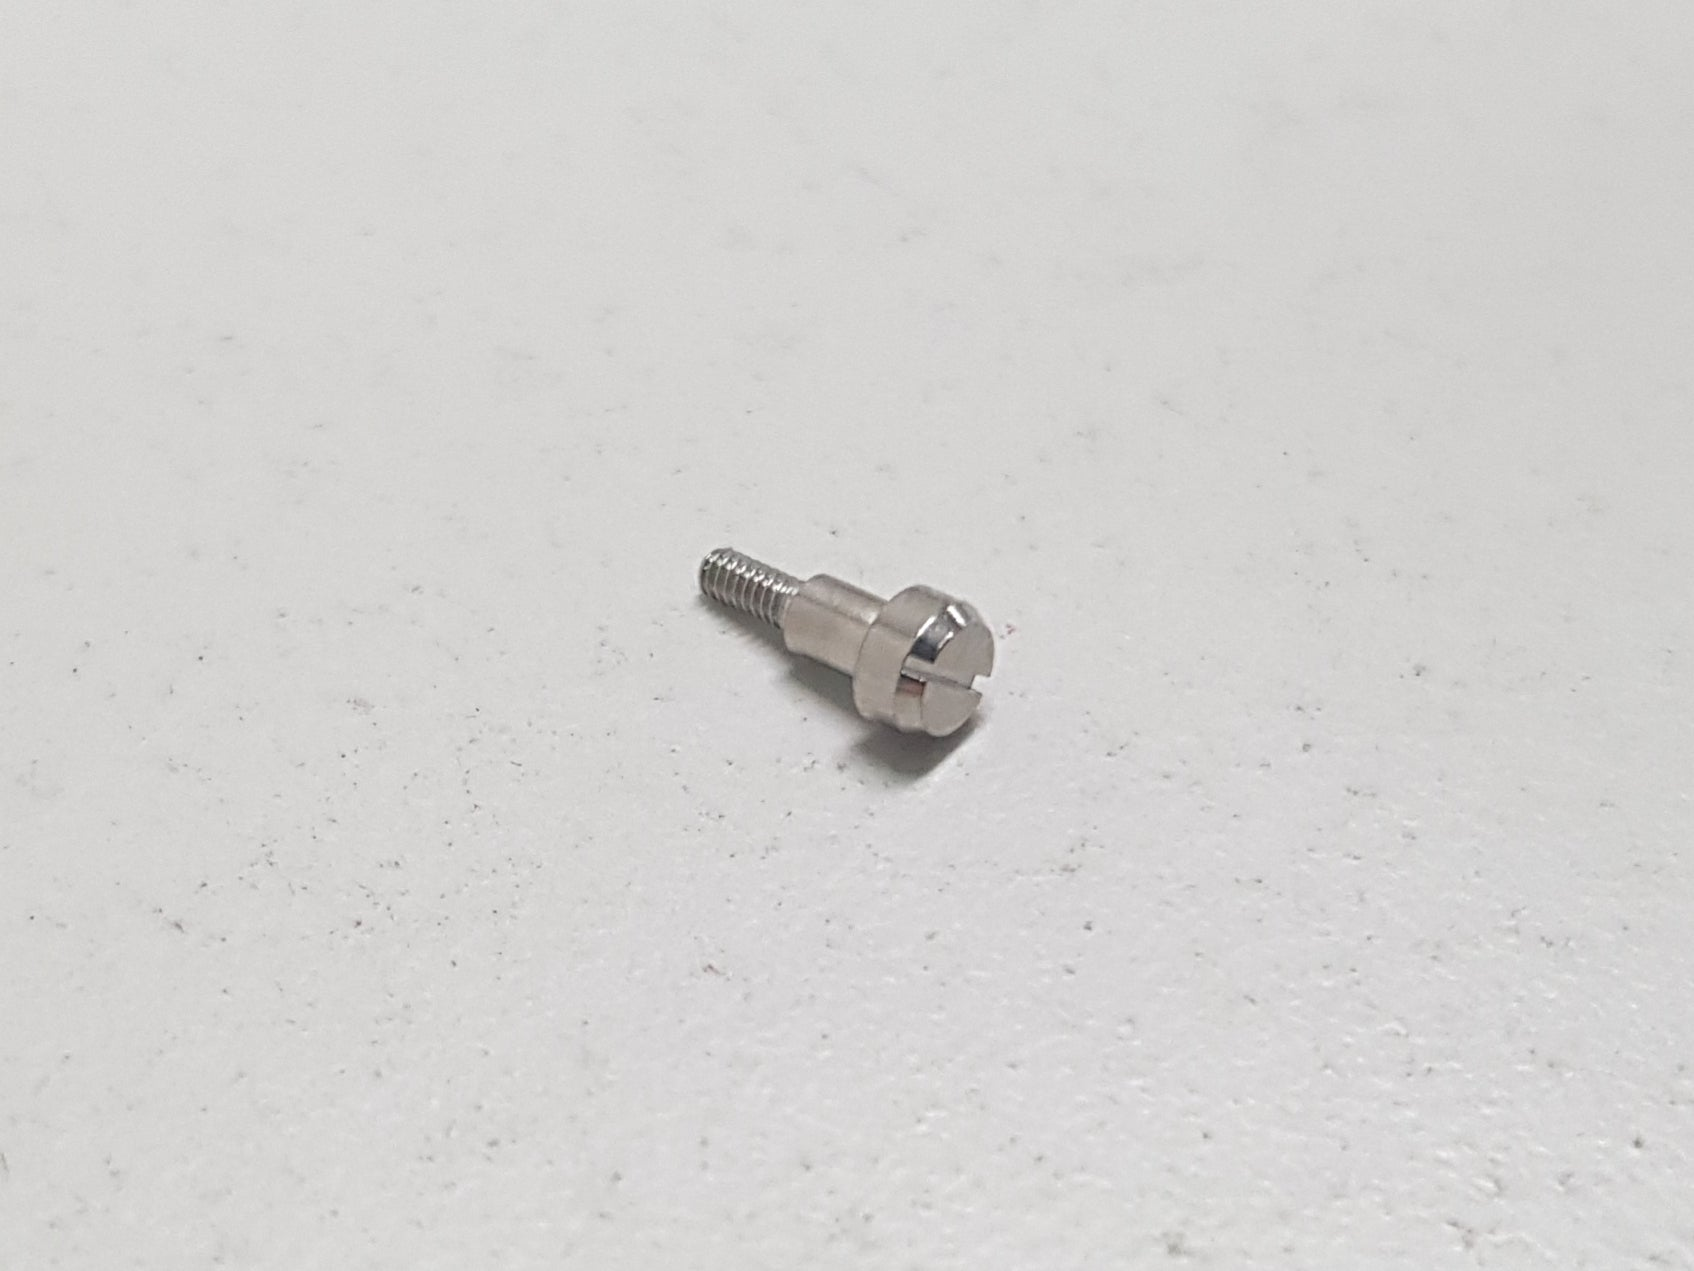 CASIO SHORT BAND SCREW (10049113) - OTHER CASIO